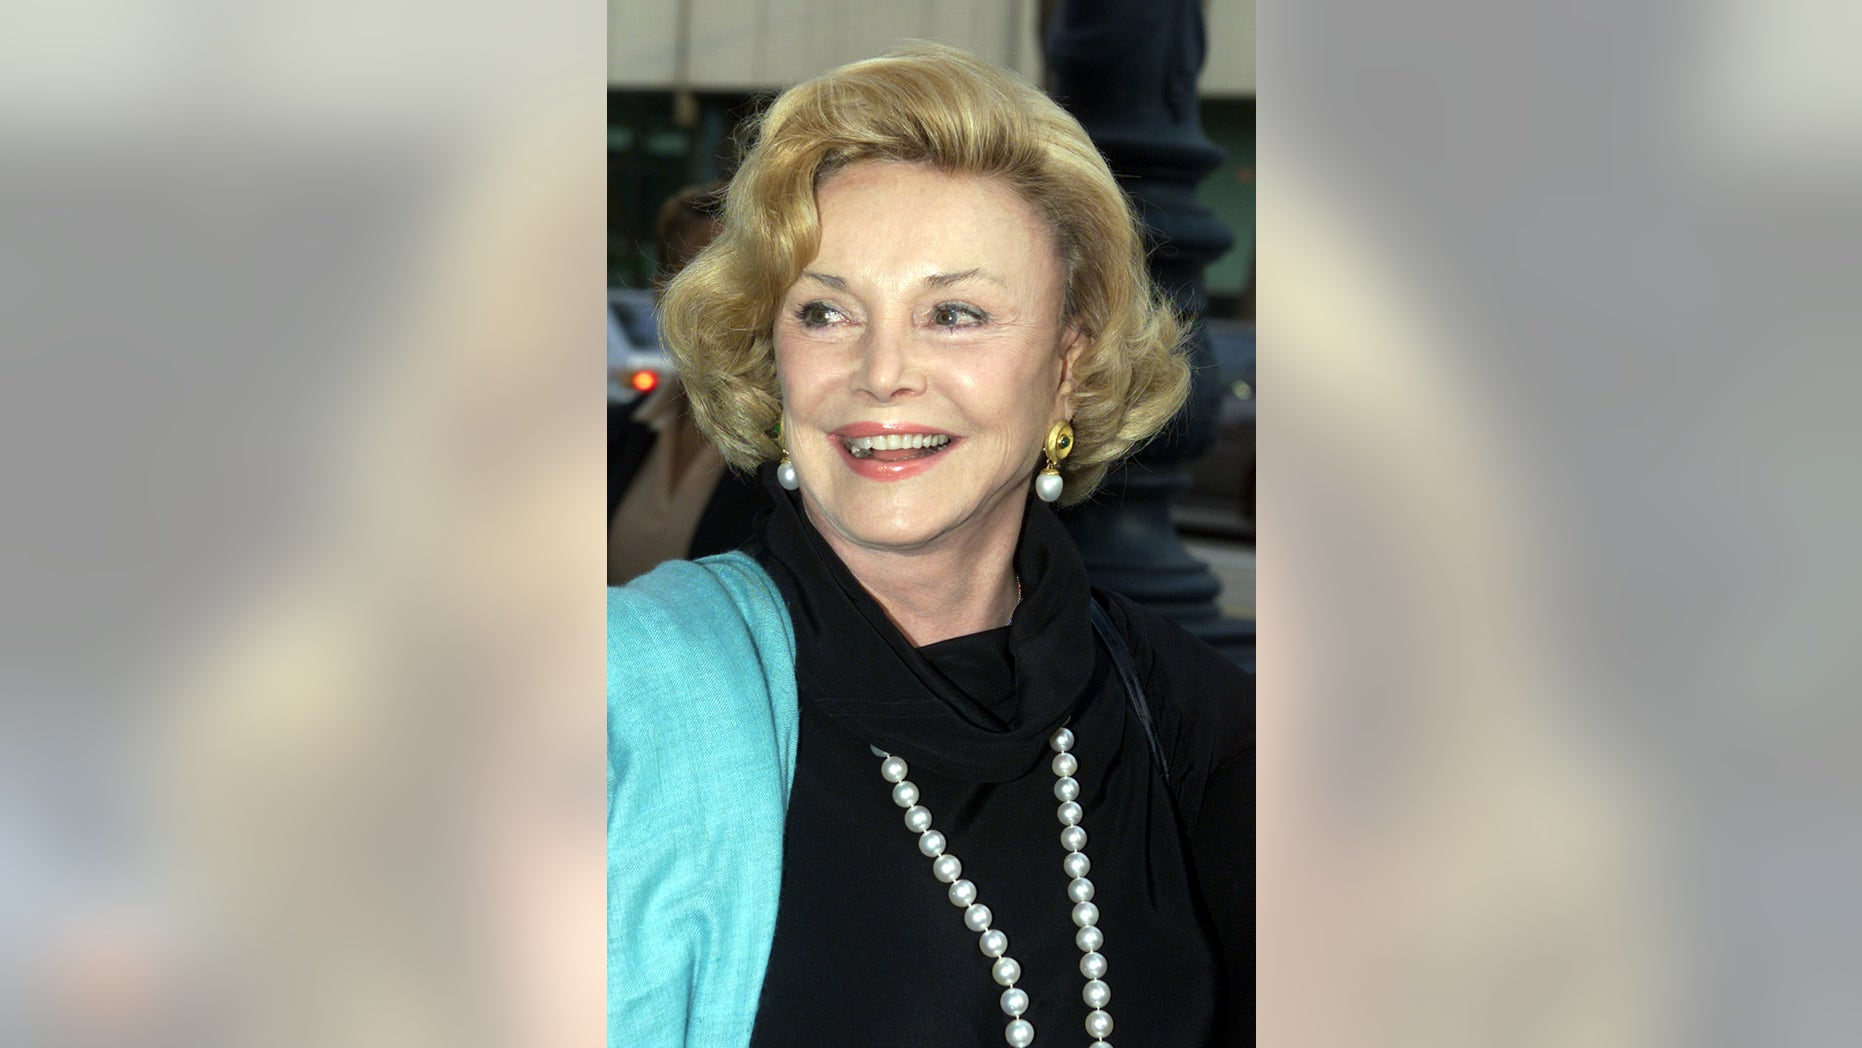 Barbara Sinatra, [widow of singer Frank Sinatra], arrives for a memorial tribute to Austrian film director [Billy Wilder in Beverly Hills, May 1, 2002. Wilder died on March 27, 2002.] - RTXL8G8